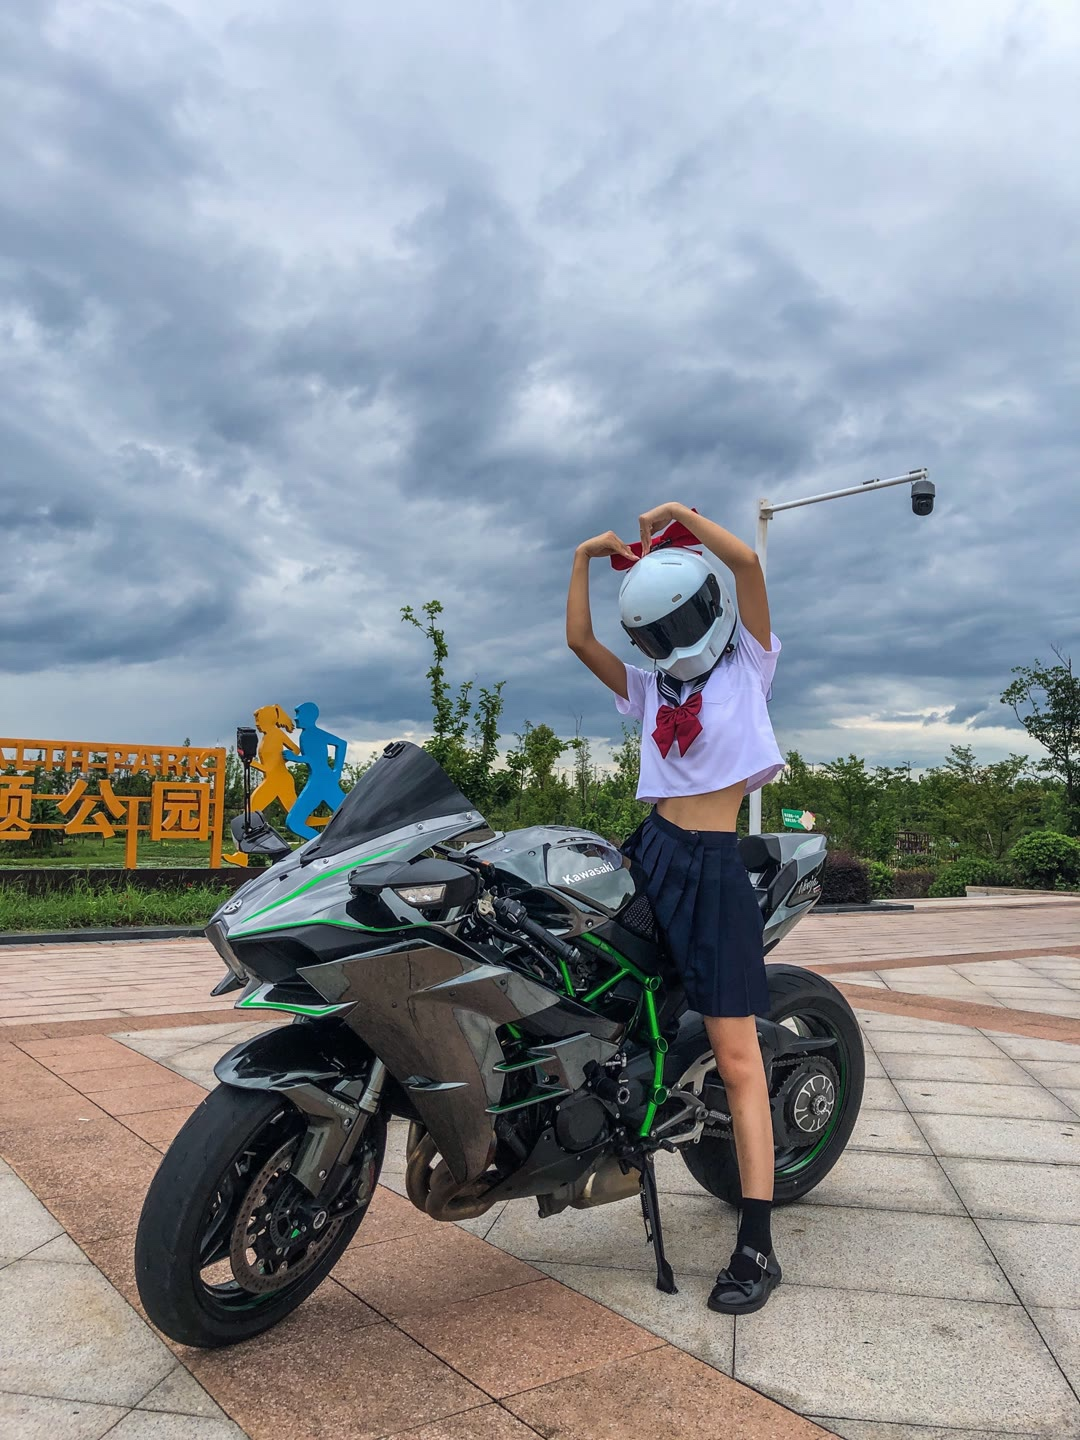 Imported Kawasaki H2R sports car Yamaha R6 locomotive Mini Ninja race horizon 250cc Aurora Borealis motorcycle